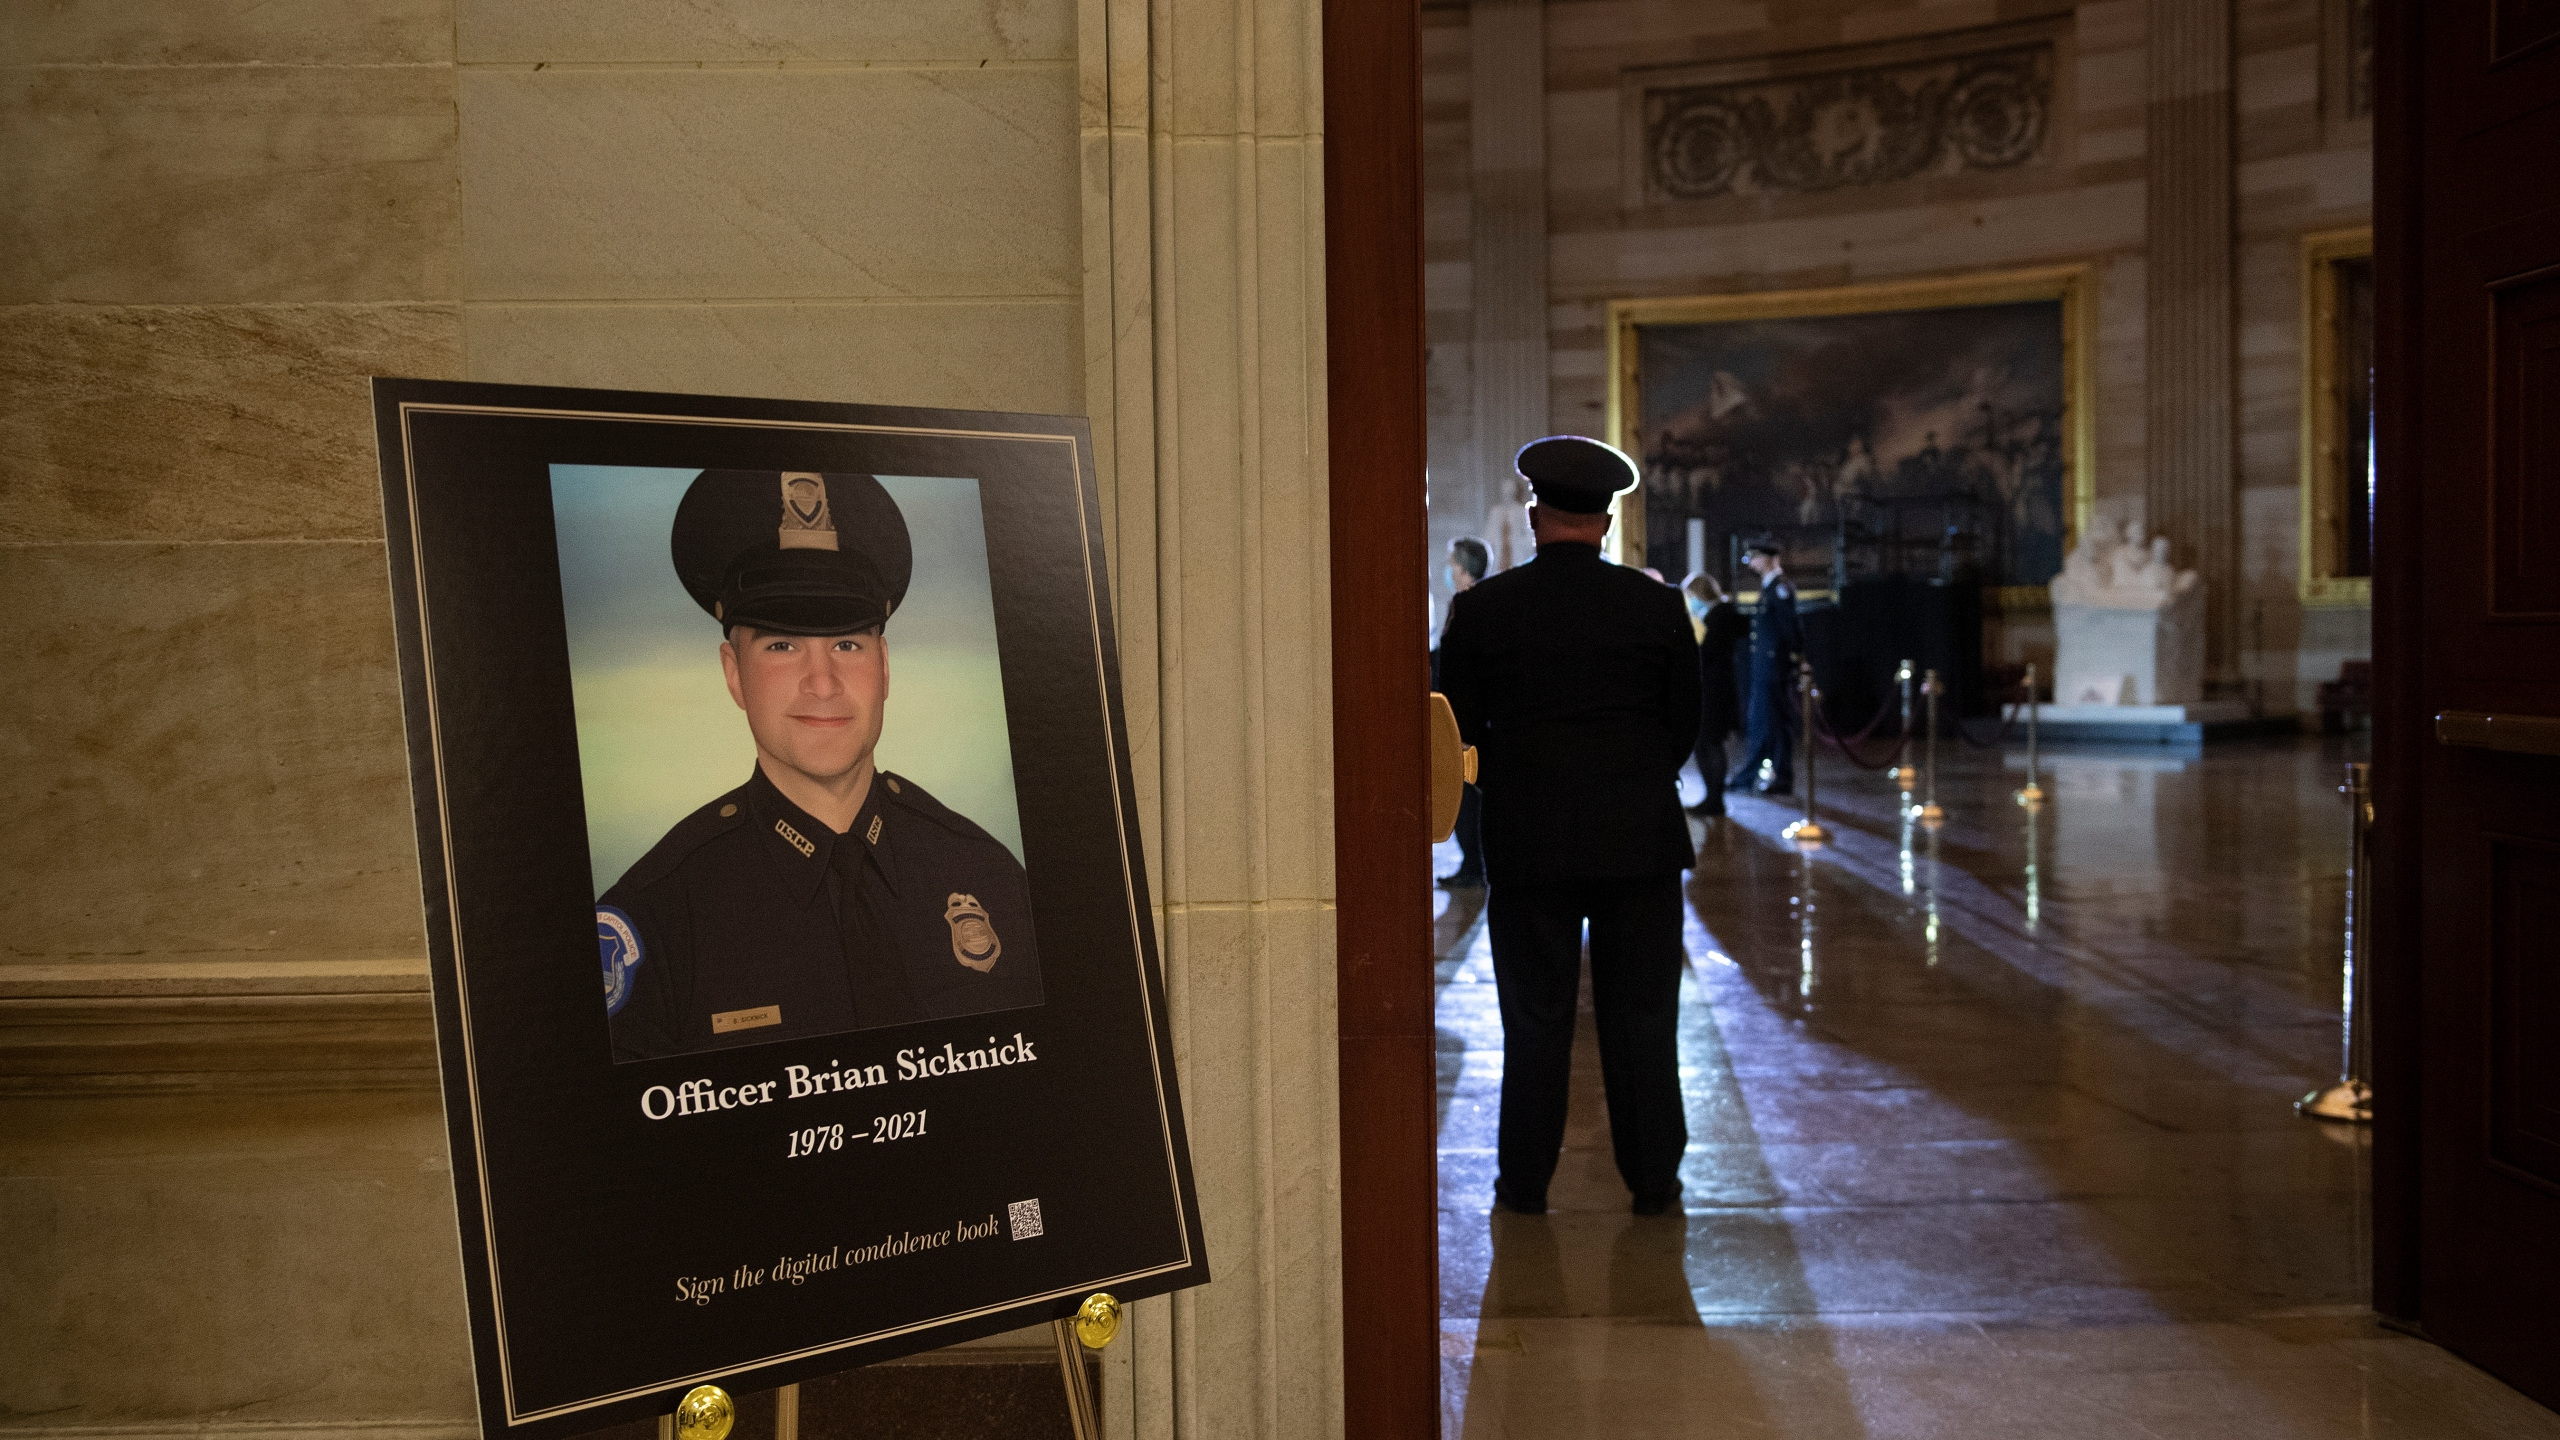 FILE - In this Feb. 2, 2021, file photo a placard is displayed with an image of the late U.S. Capitol Police officer Brian Sicknick on it as people wait for an urn with his cremated remains to be carried into the U.S. Capitol to lie in honor in the Capitol Rotunda in Washington. Federal investigators probing the death Sicknick, a U.S. Capitol Police officer killed in the Jan. 6 riot, have zeroed in on a suspect seen on video appearing to spray a chemical substance on the officer before he later collapsed and died, two people familiar with the matter told The Associated Press. (Brendan Smialowski/Pool via AP, File)